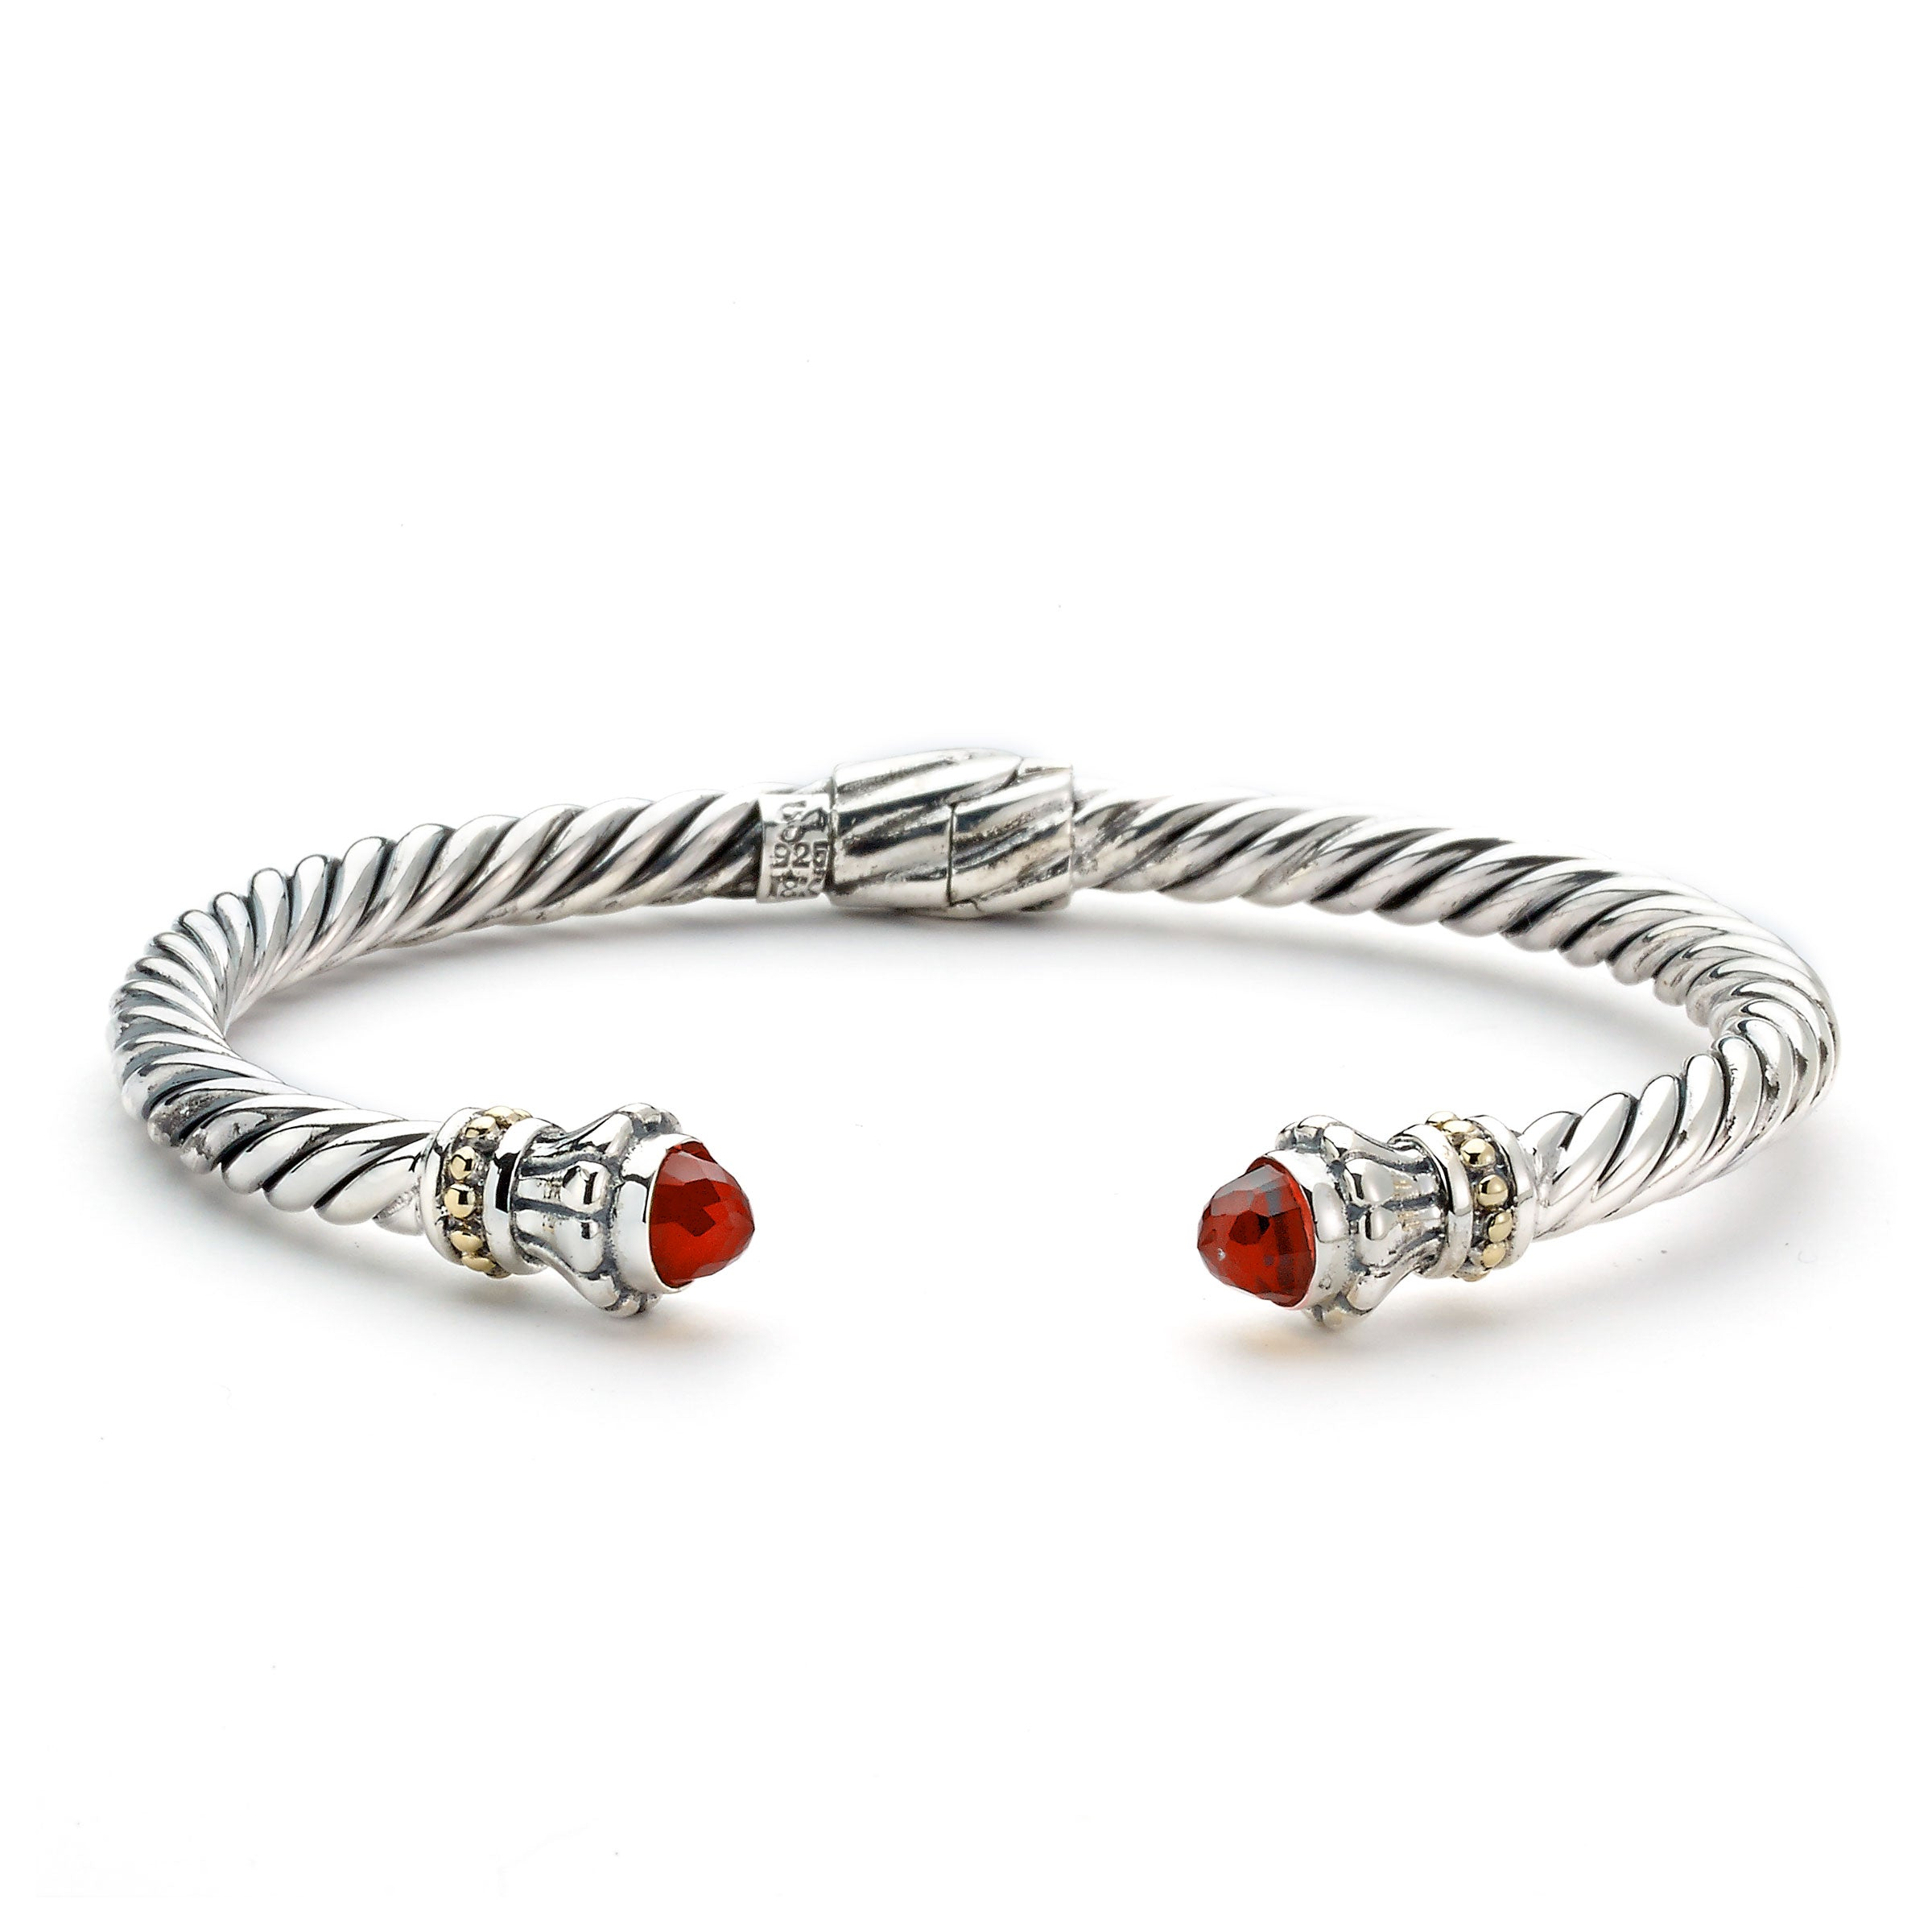 Rope Design Cuff with Garnet Ends, Sterling Silver